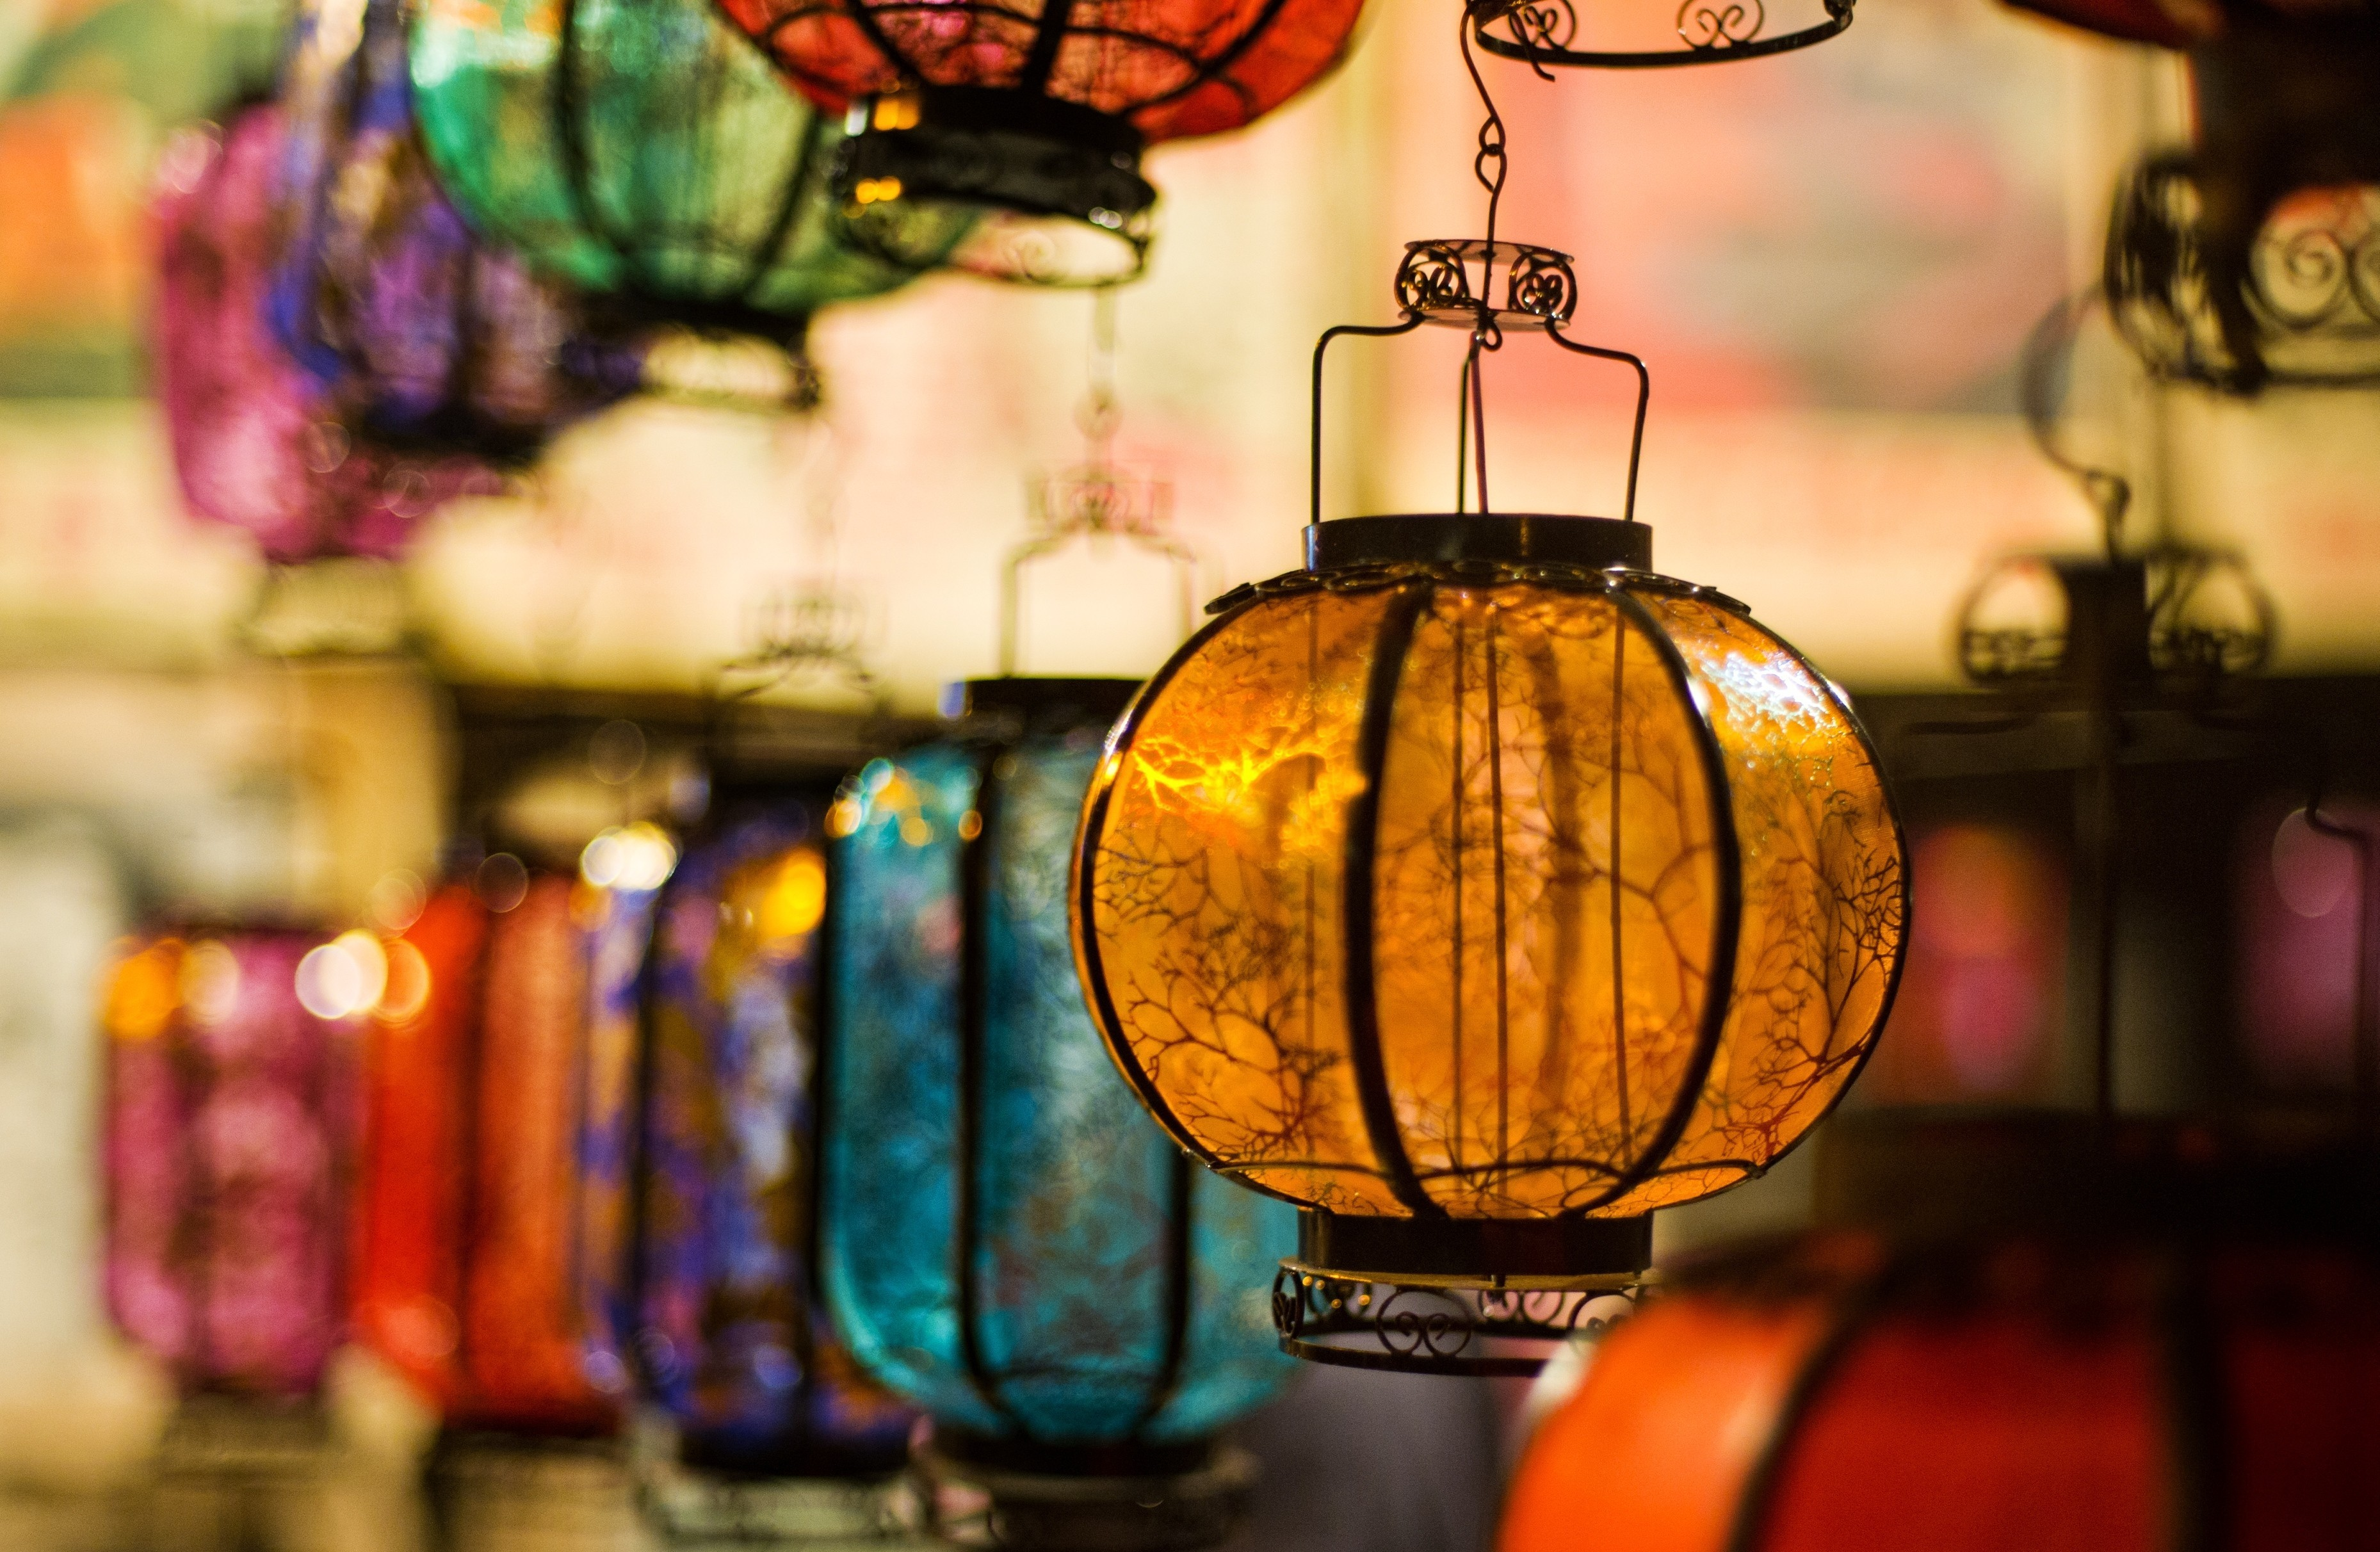 76 Lantern HD Wallpapers | Background Images - Wallpaper Abyss for Lantern Lights Wallpaper  67qdu